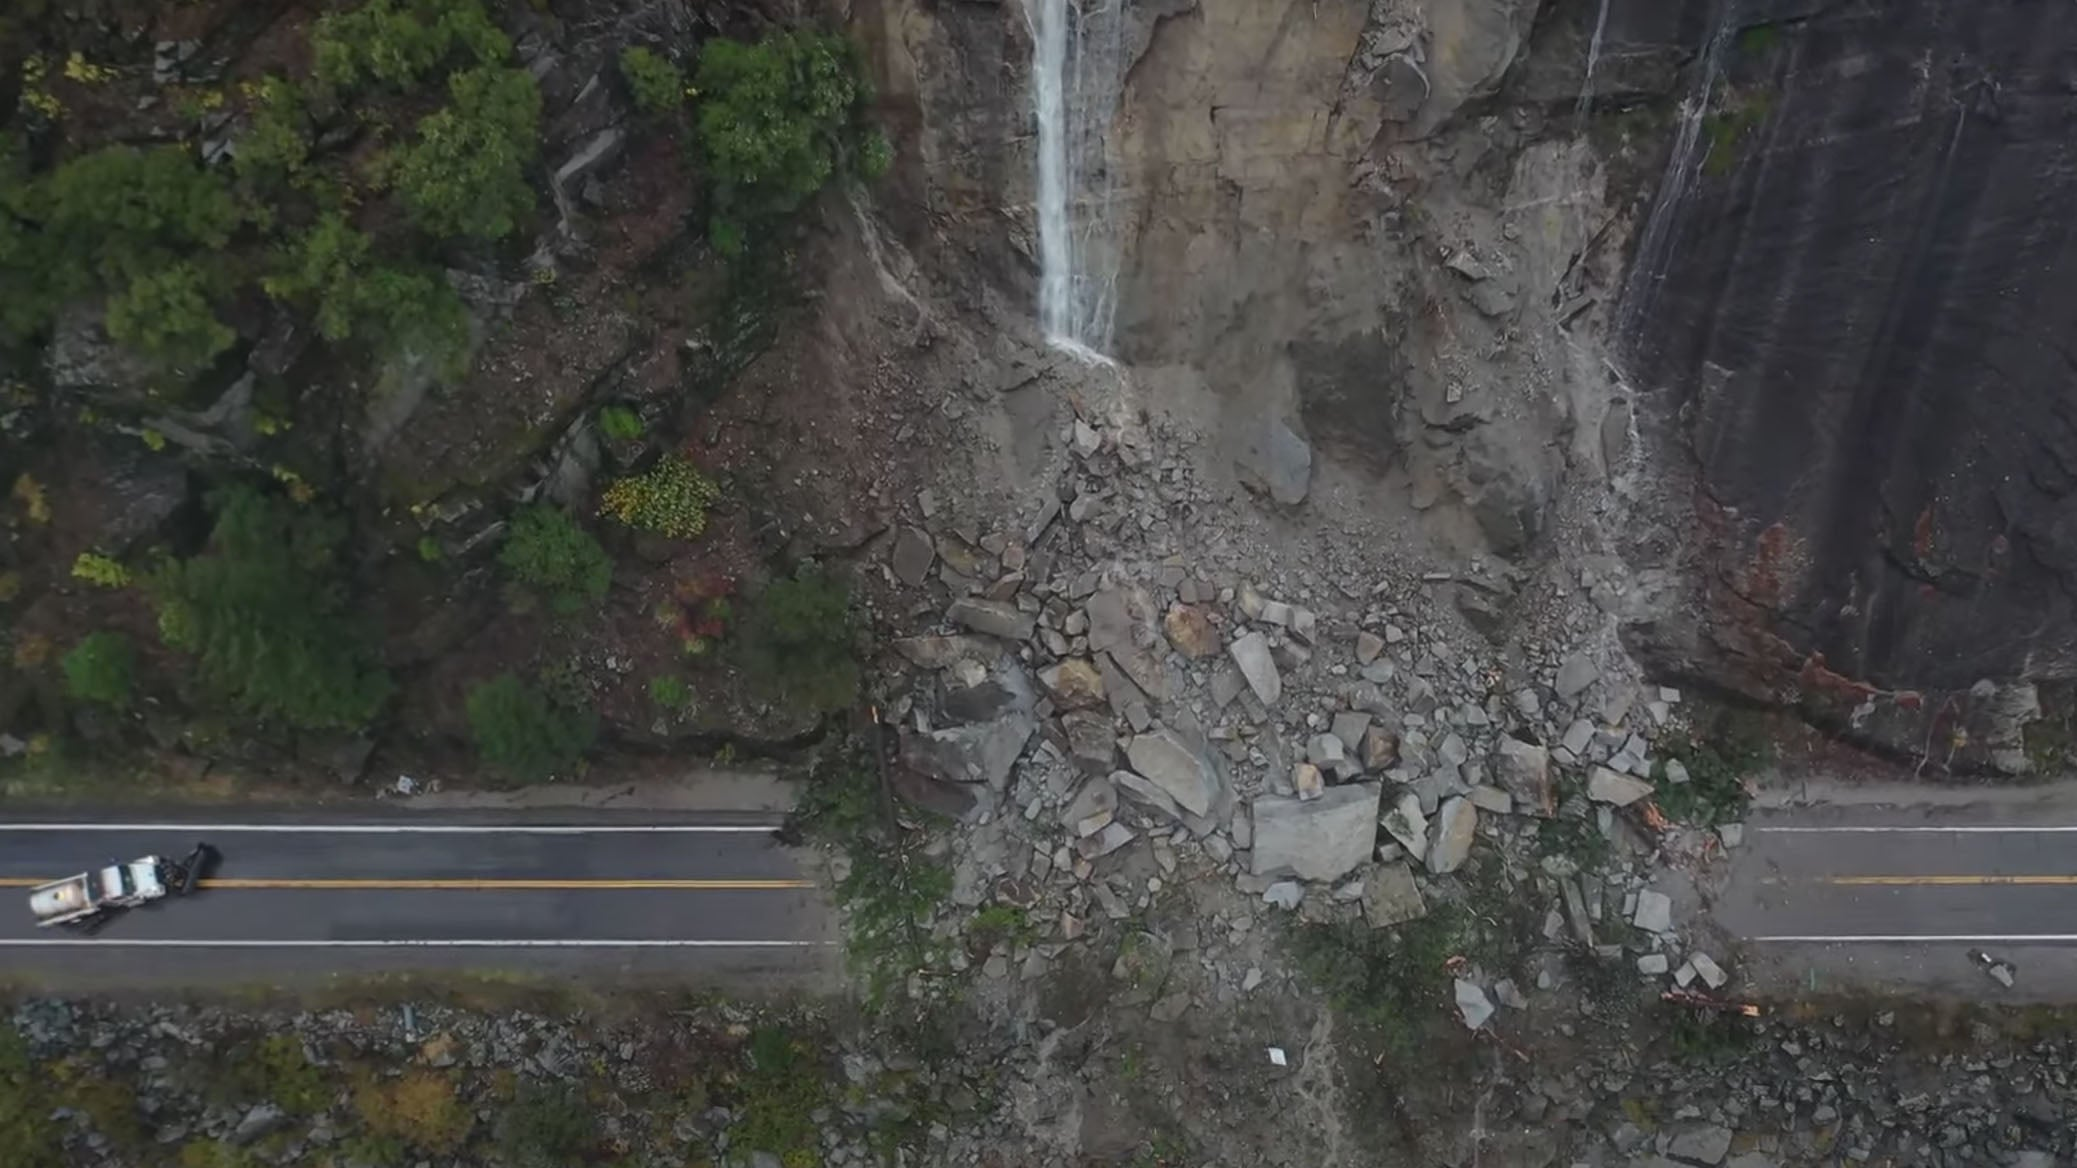 Live Updates: Landslides, Flooding Clobber California | The Weather Channel - Articles from The Weather Channel | weather.com